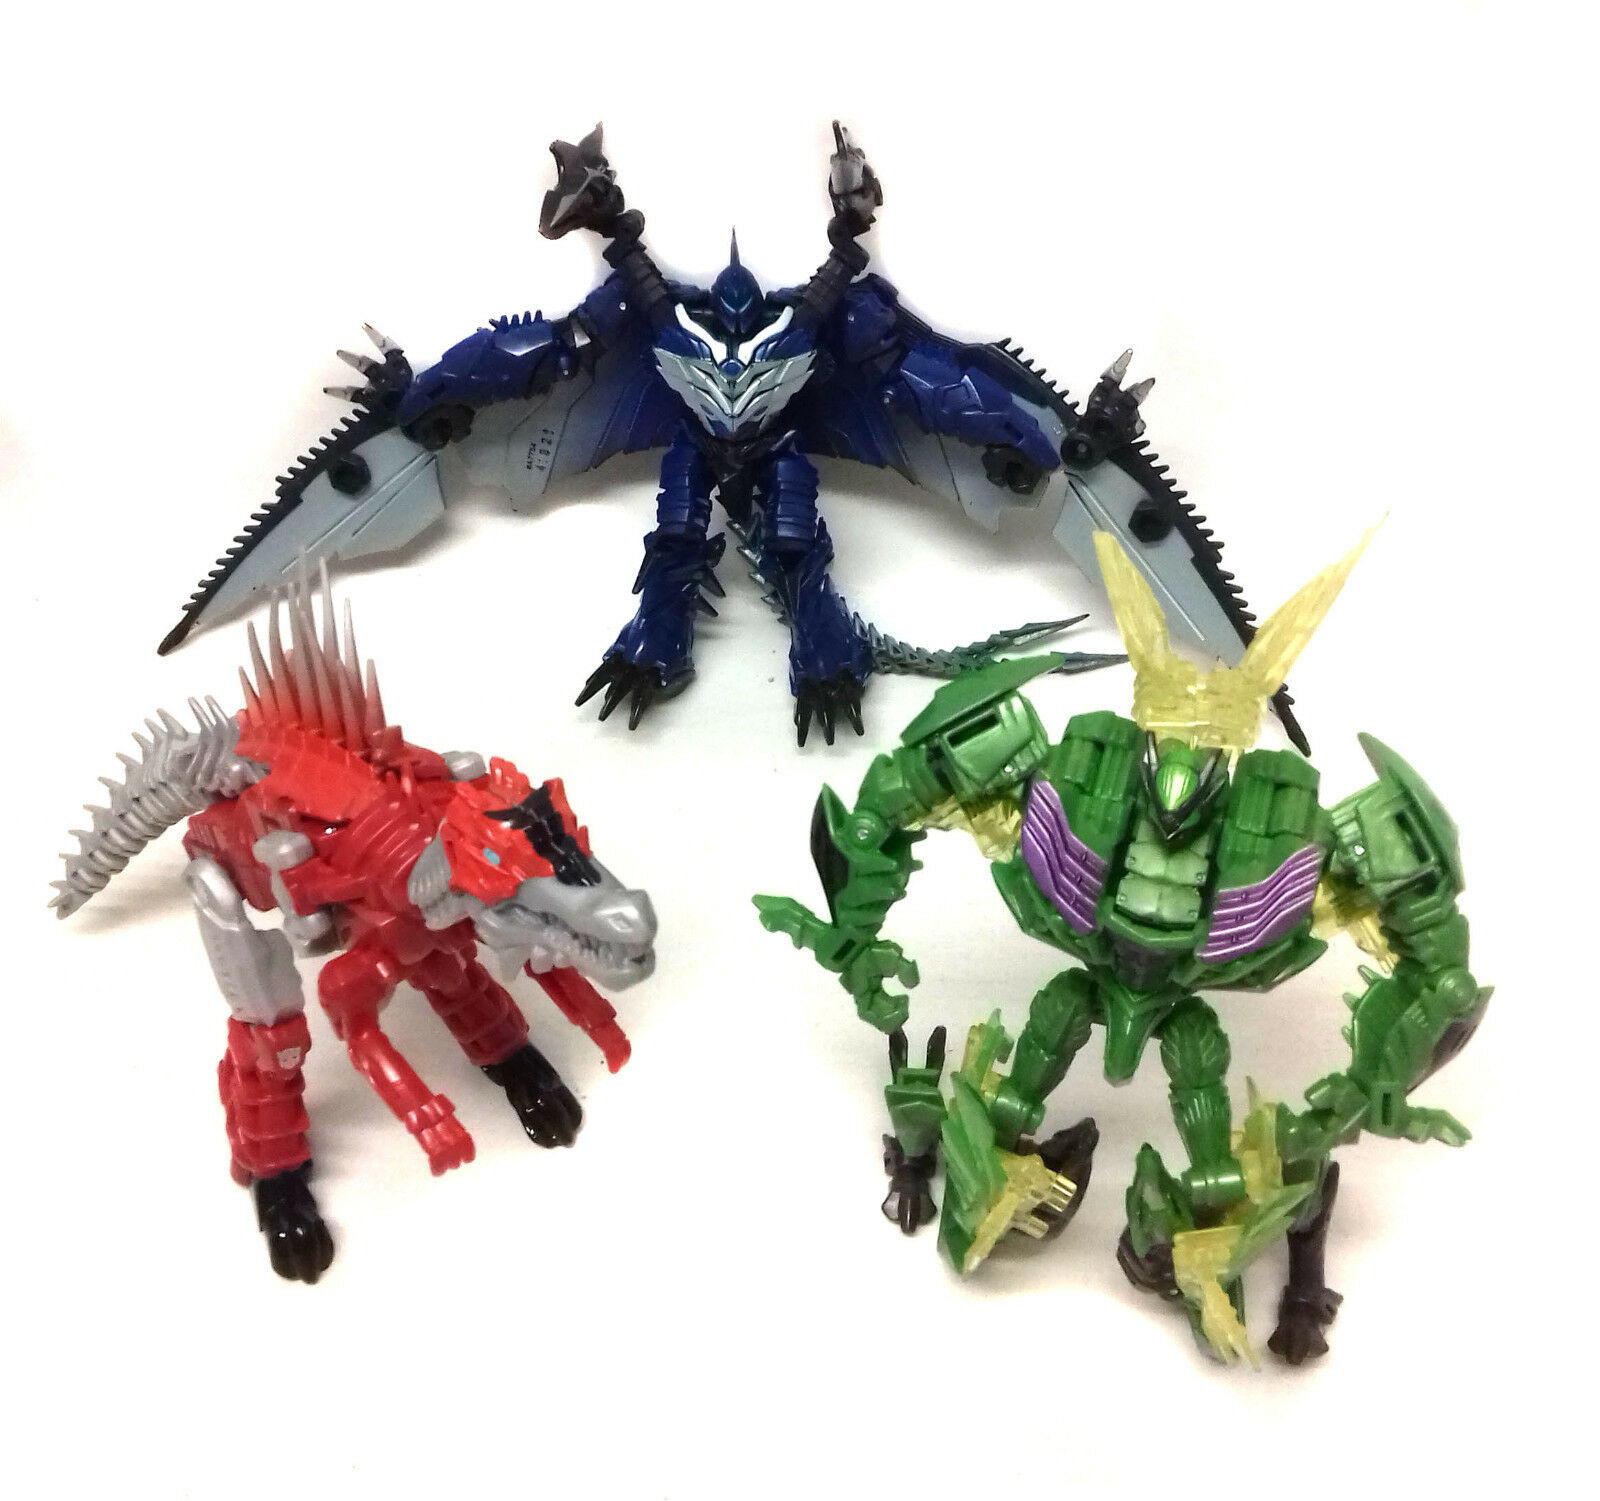 Transformers Age of Extinction  Deluxe Class Dinobos set of 3 toy figures NICE